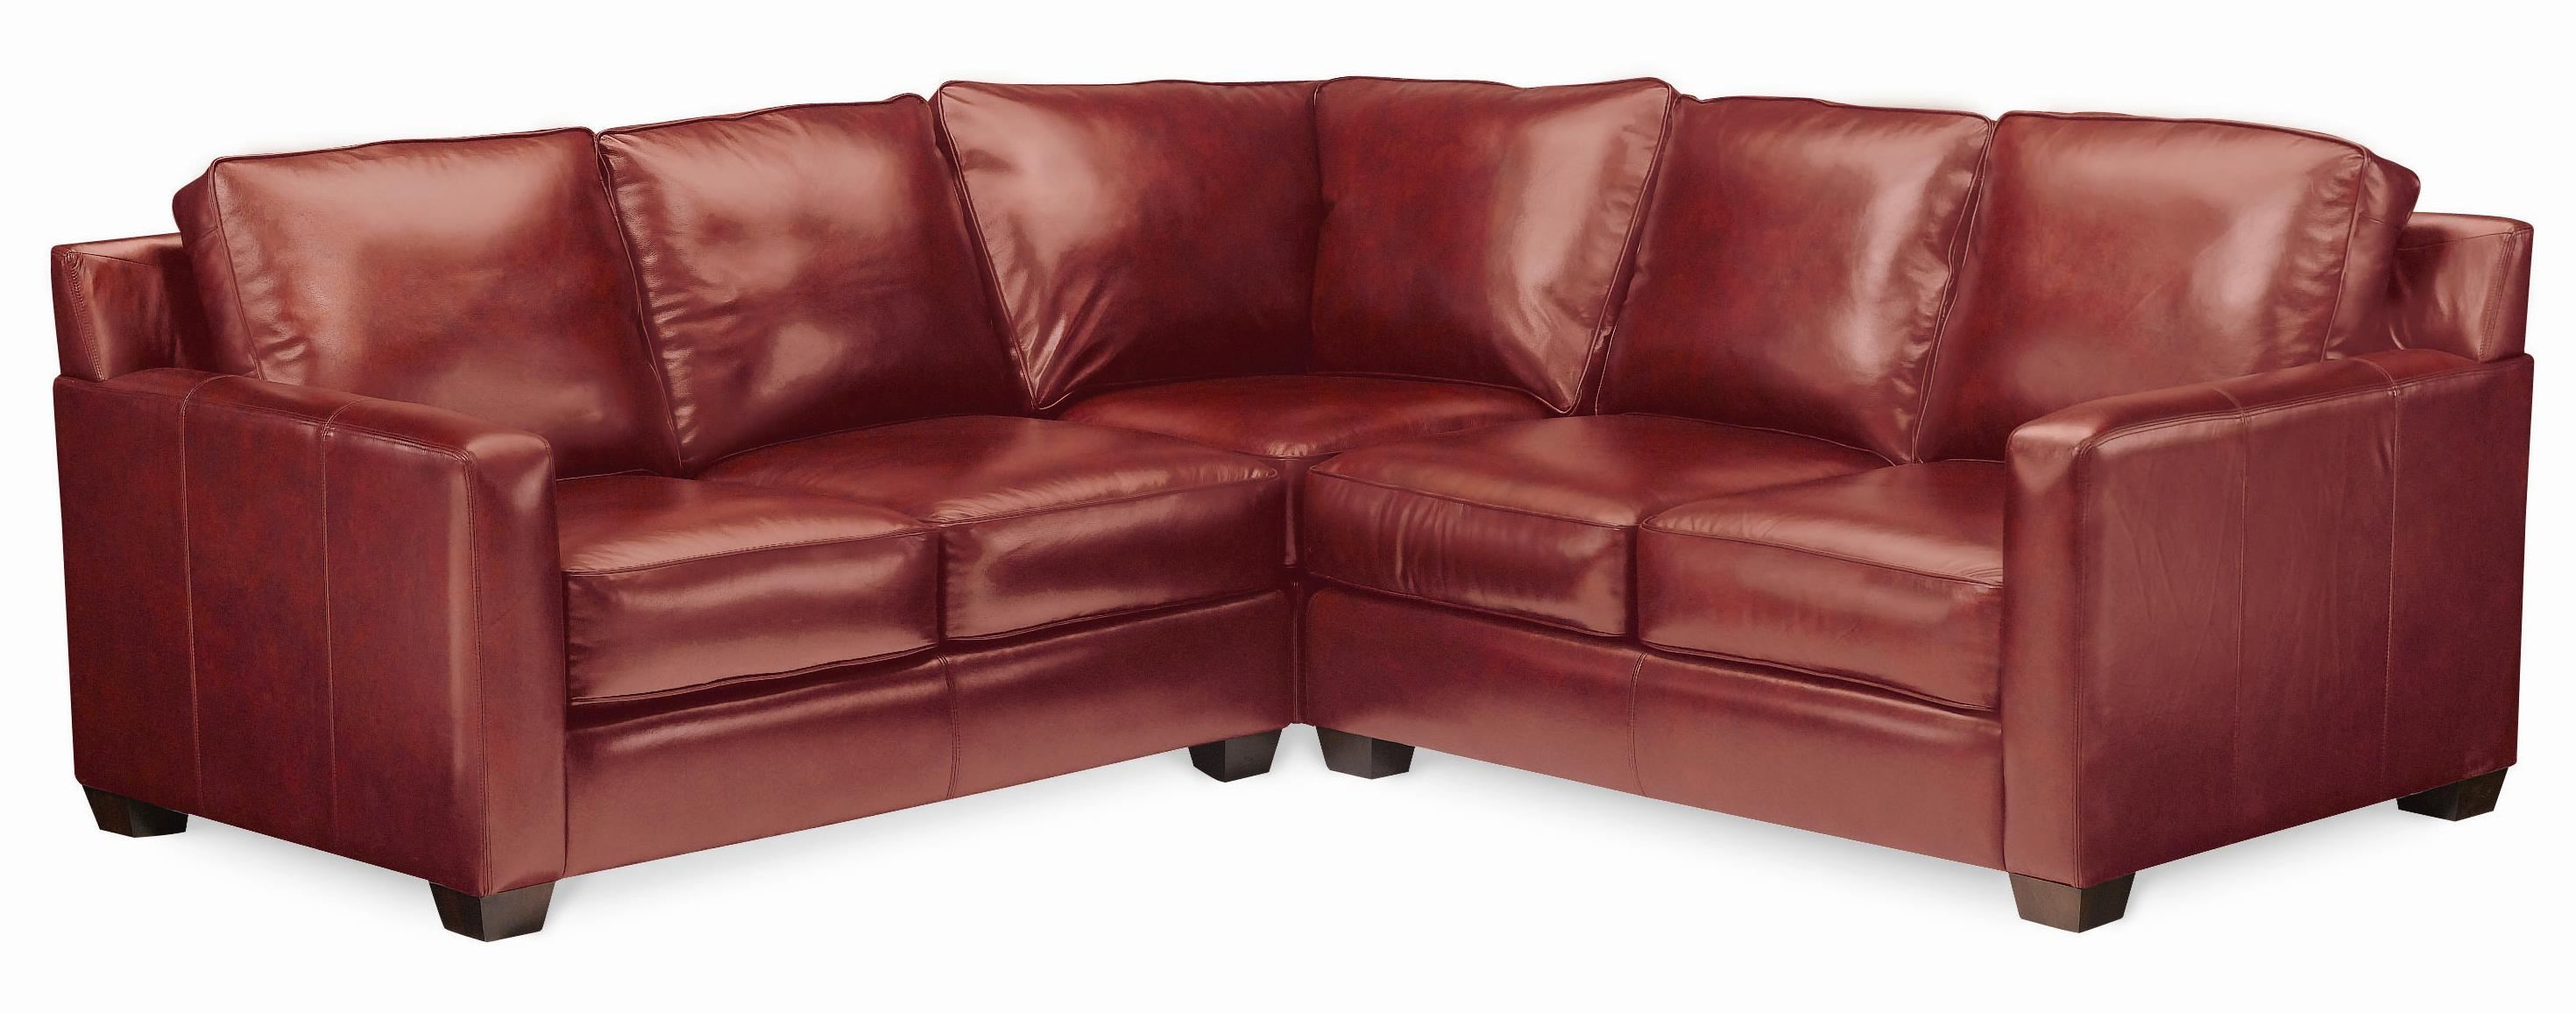 Thomasville Leather Choices Metro Select Plus Sectional Item Number 20923 Csec